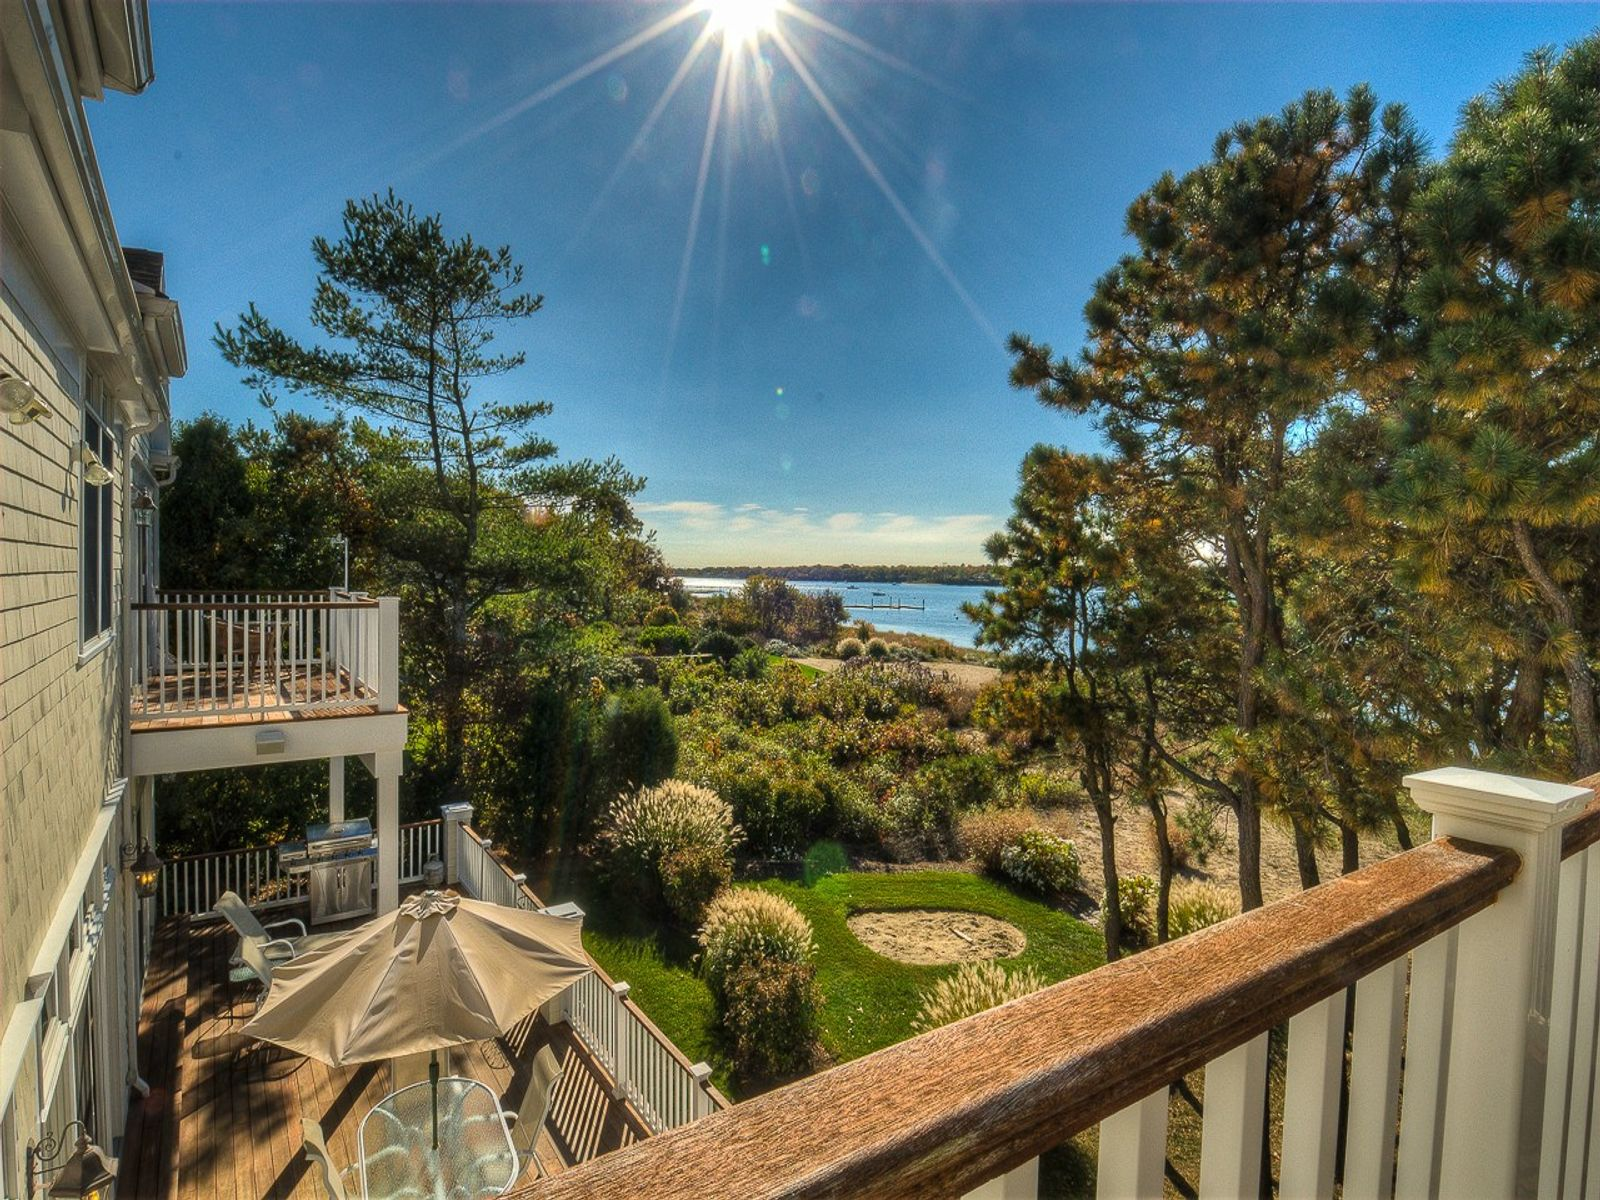 Waterfront Home with Private Beach, Falmouth MA Single Family Home - Cape Cod Real Estate